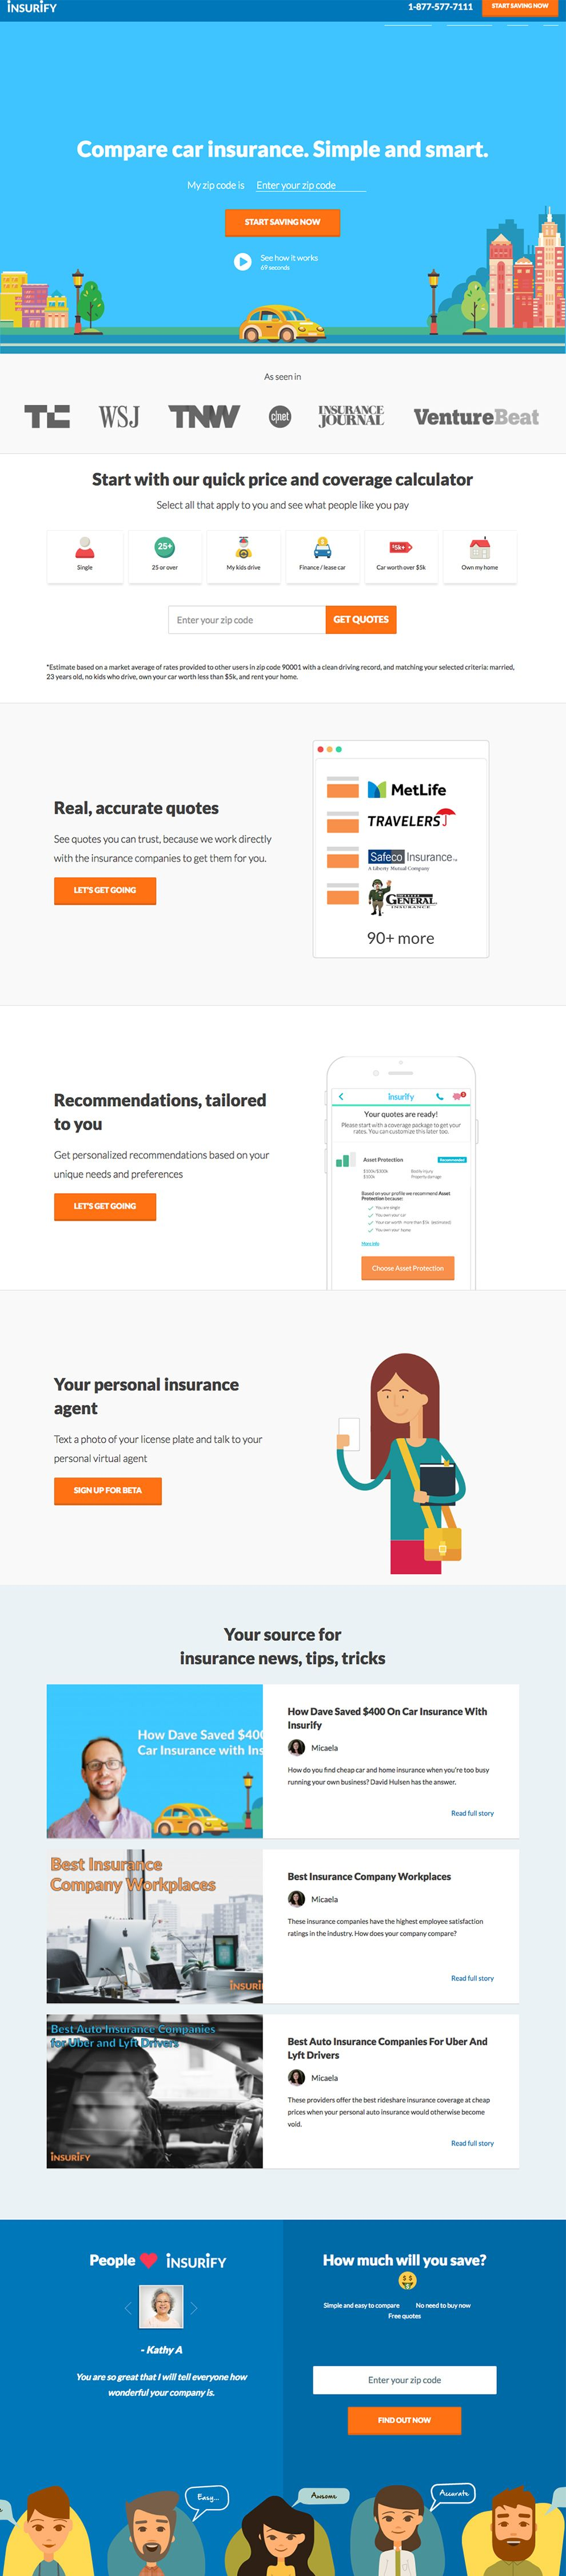 Insurify Illustrated Homepage